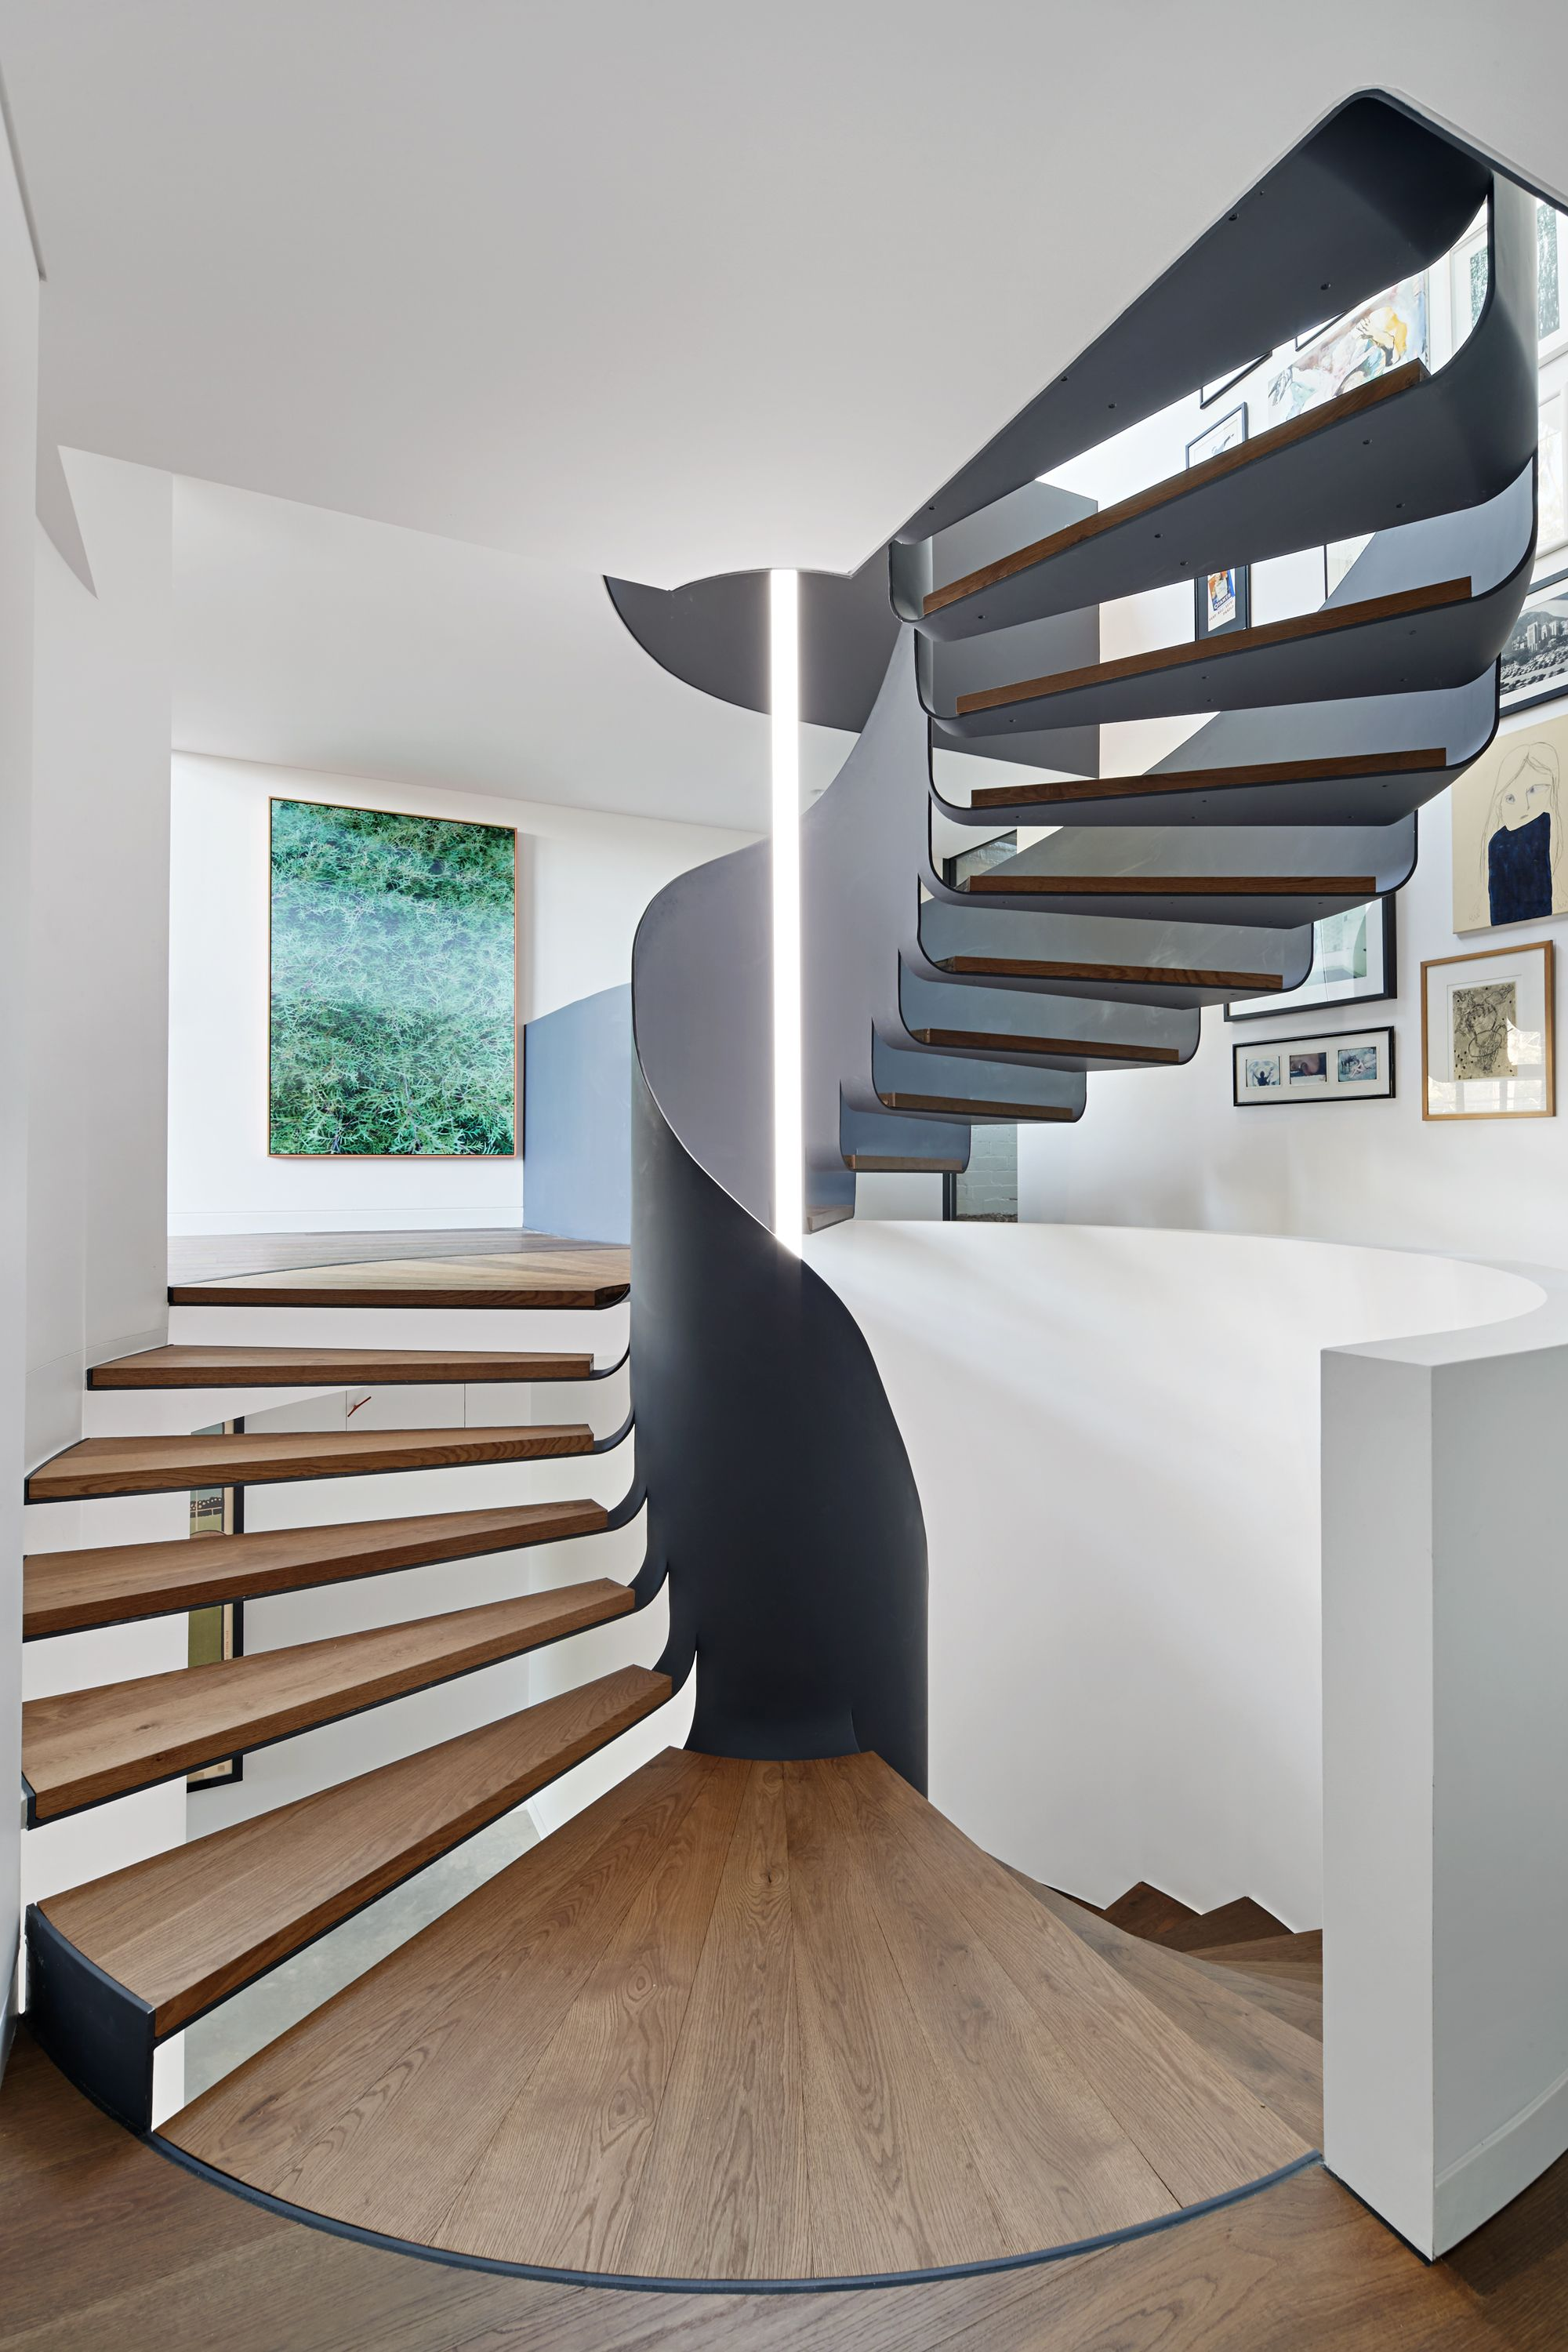 A circular stairway consolidates level changes into a